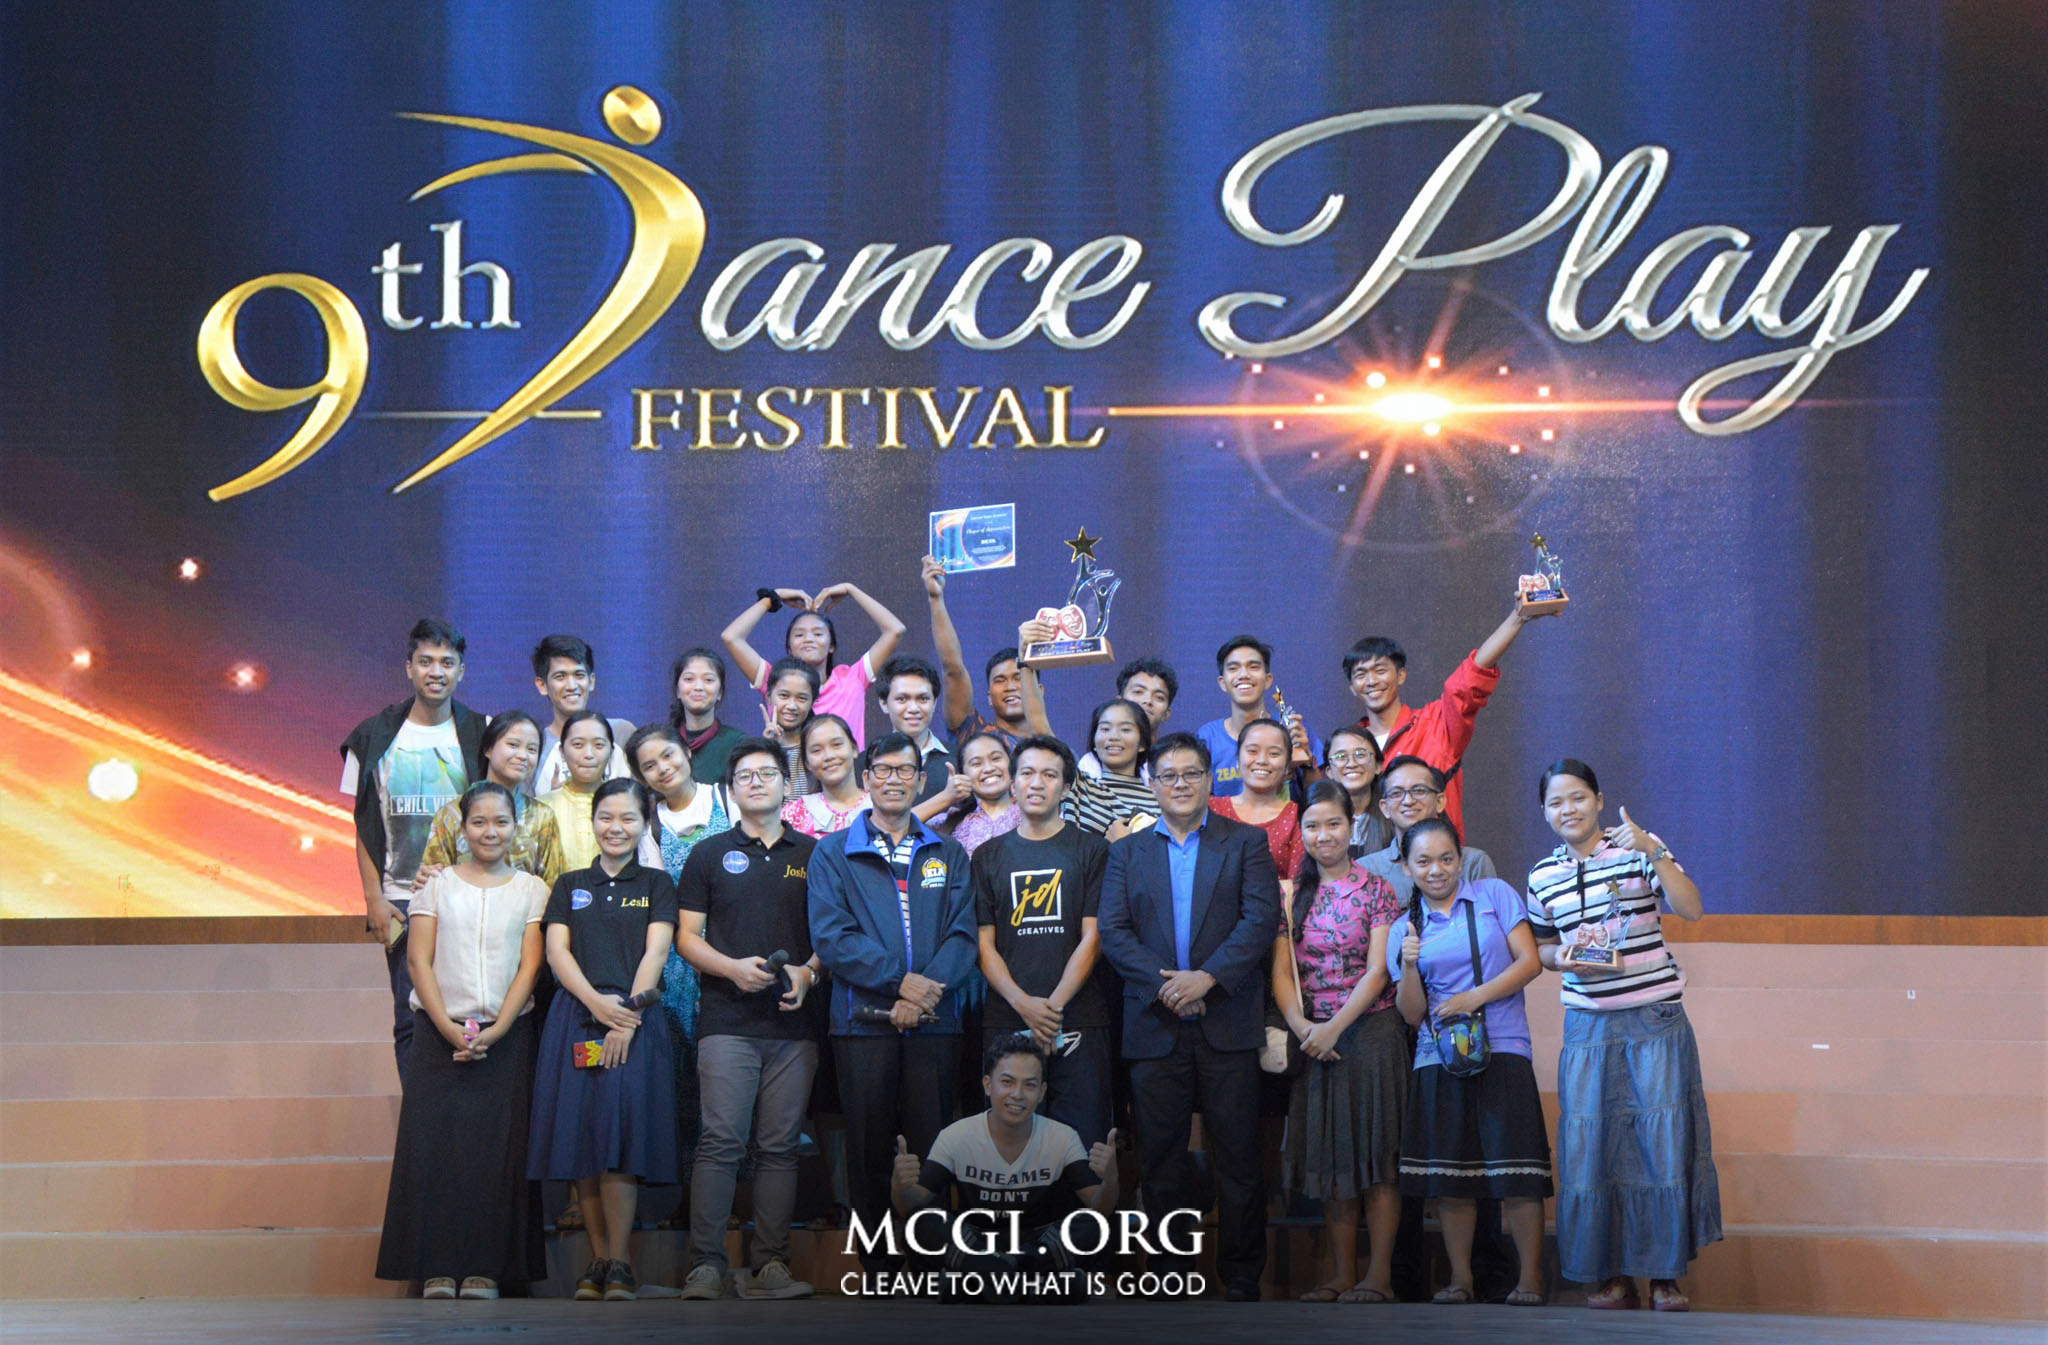 "On 9th Dance Play Fest, MCGI Youth Urged to ""Go on a Higher Level of Service to God"""